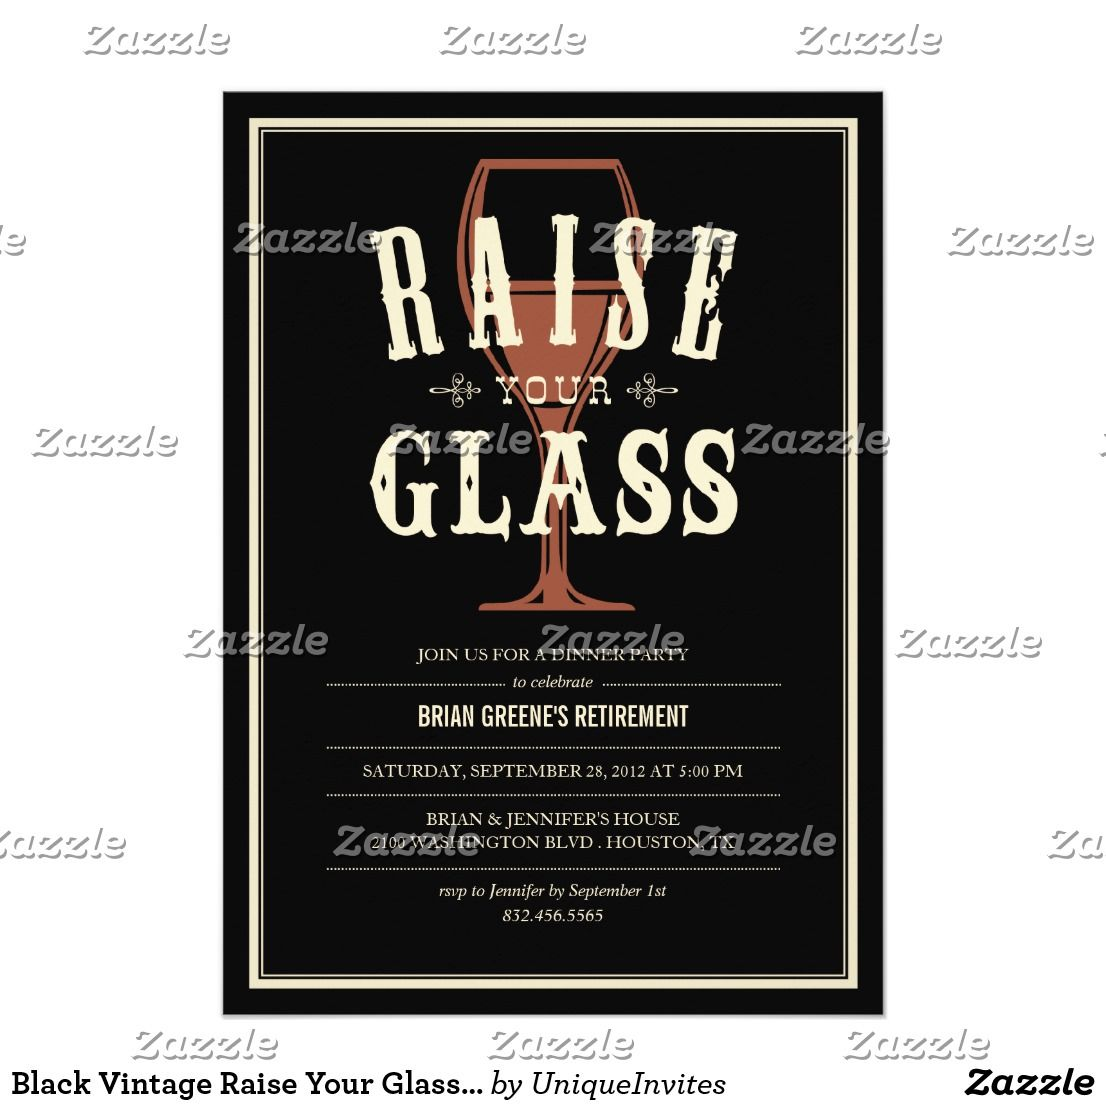 black vintage raise your glass party invitations black vintage raise your glass party invitations customize the text to fit your party needs